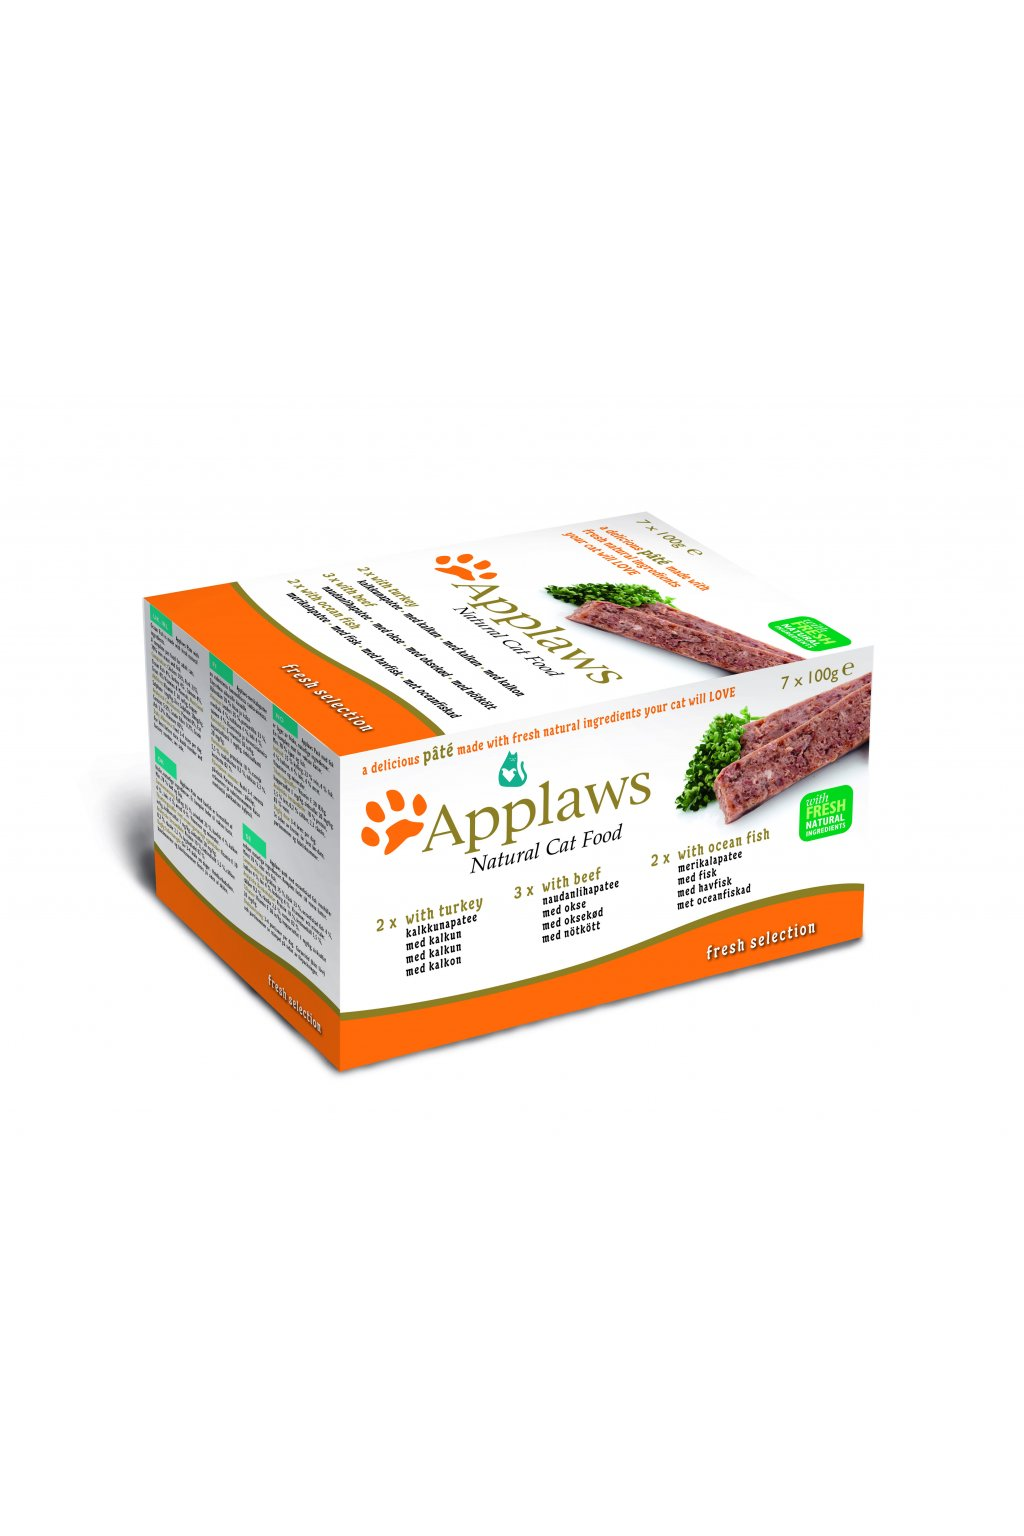 6008 Applaws Pate CAT 7x100g MP Fresh